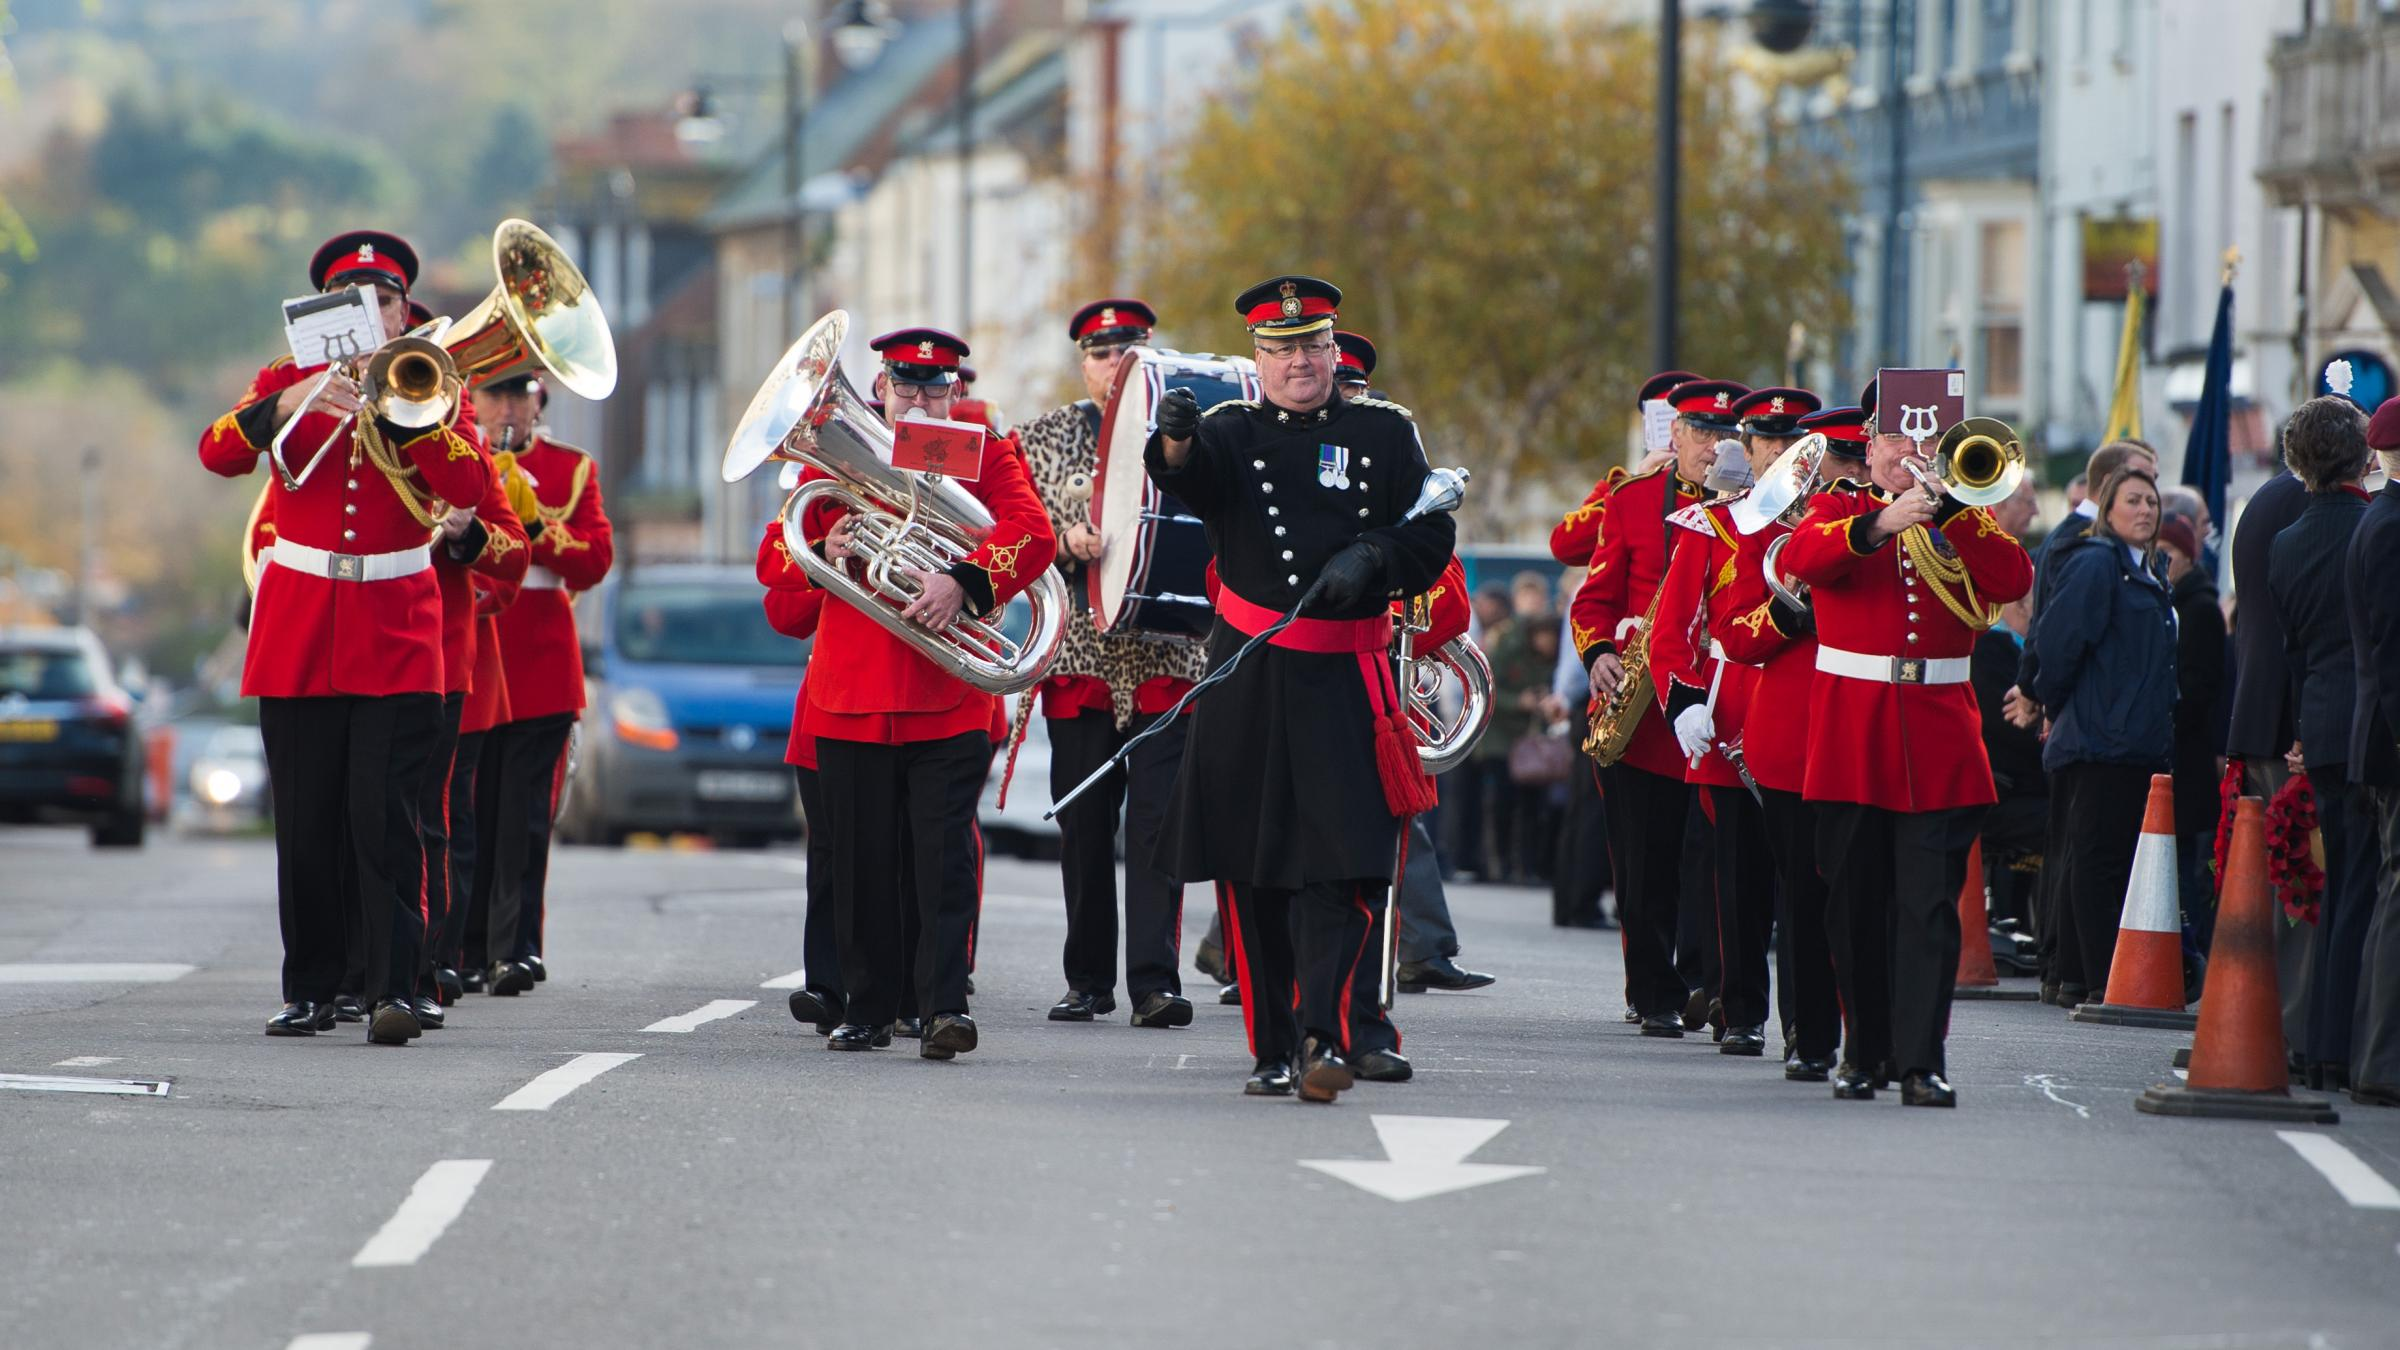 Bridport Remembrance Parade - 13/11/16 - PHOTO: ROB QUINCEY/RQ087.